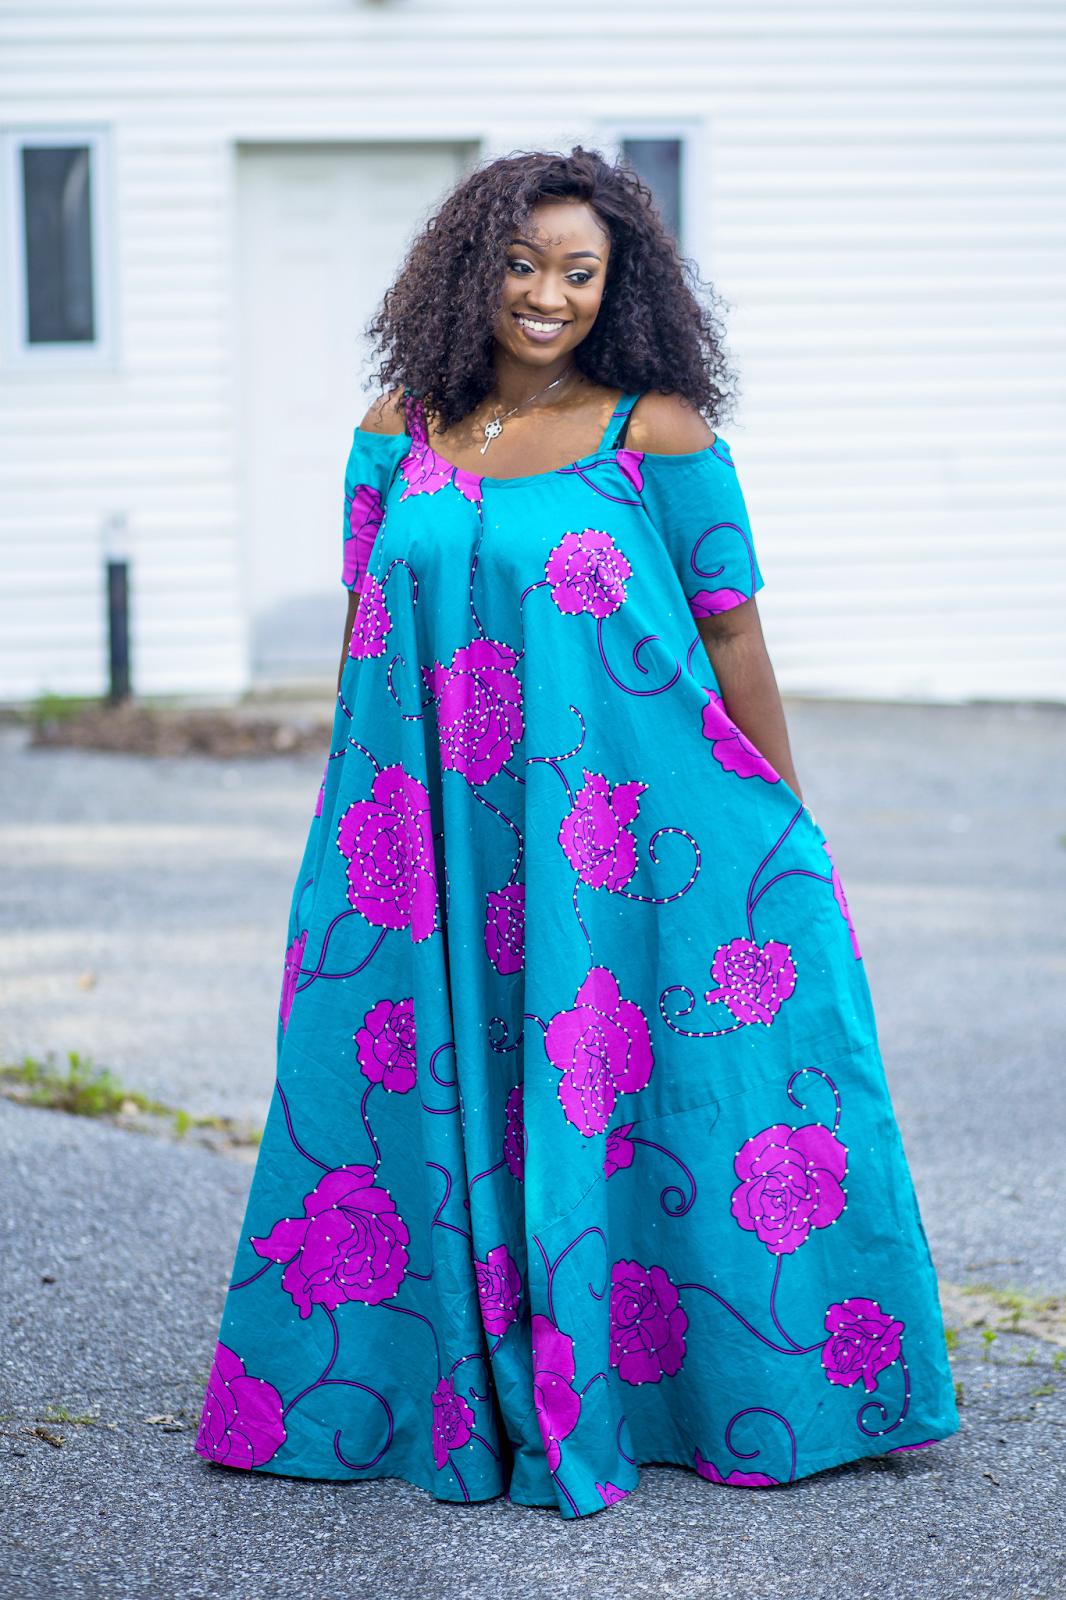 Plus size DIY ankara style. Full flare maxi dress | Plus size DIY ...